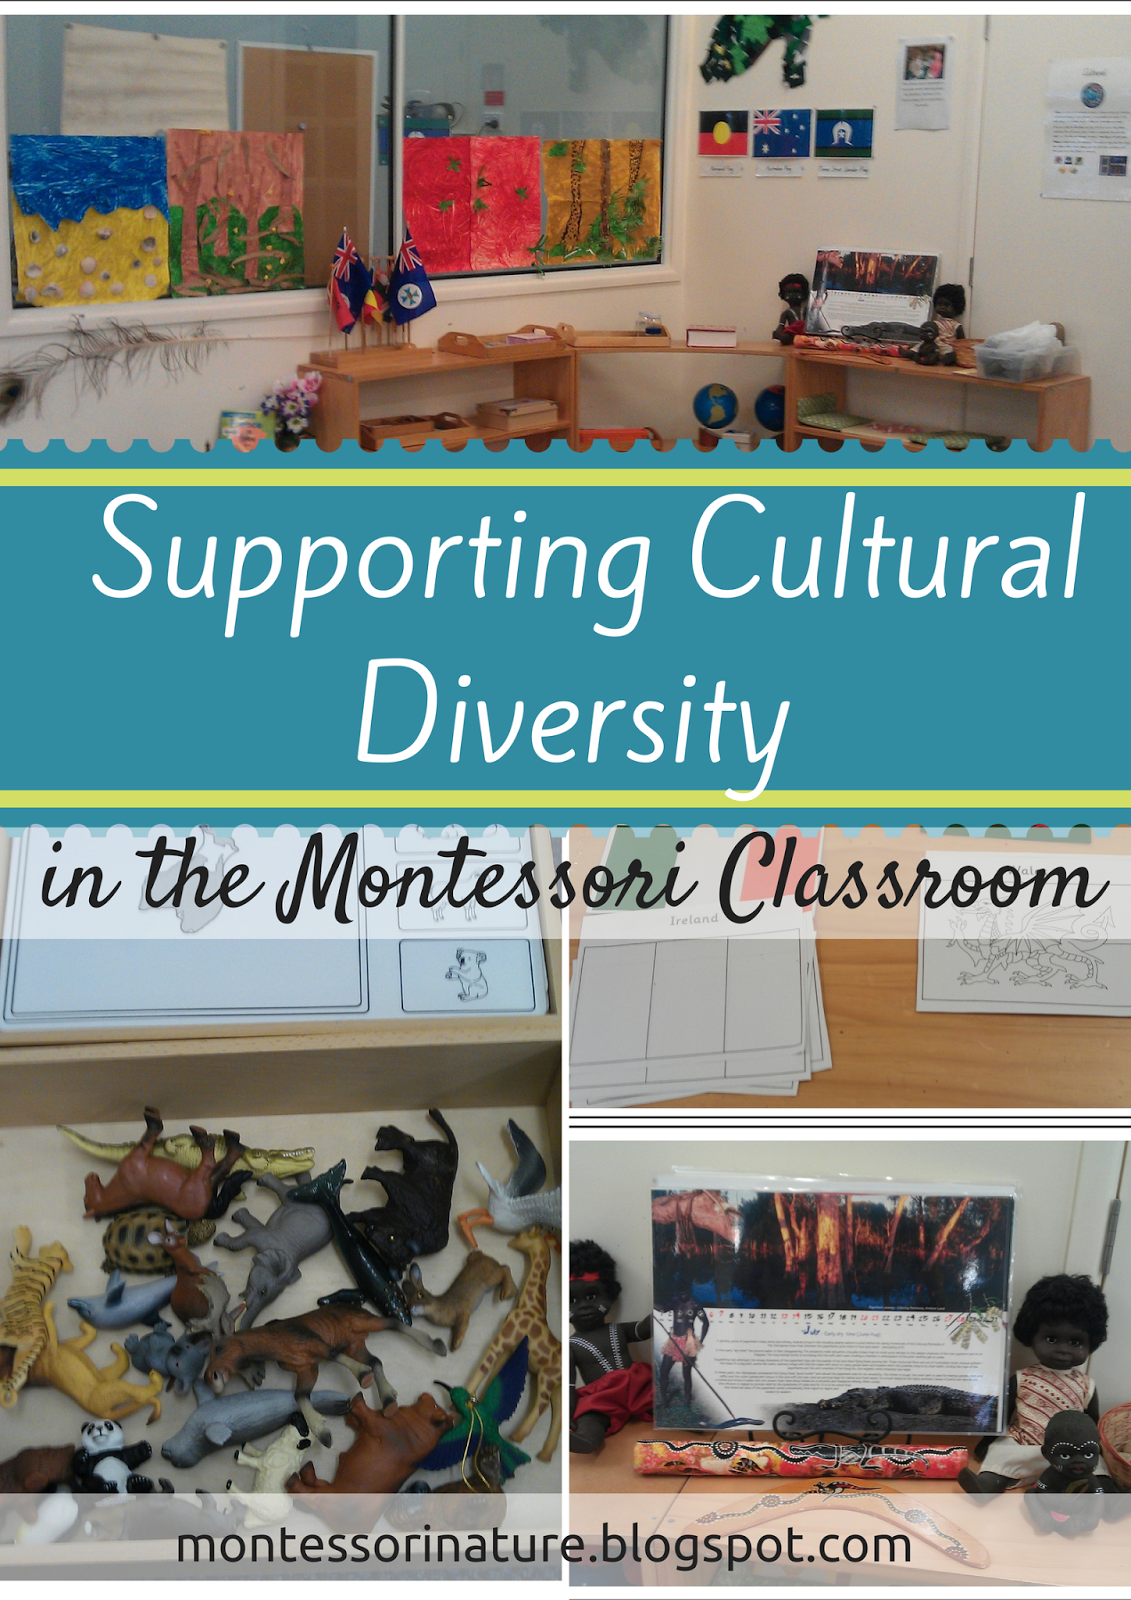 addressing cultural diversity in the classroom Diversity in the classroom may encompass age, learning styles, race, religion, gender, sexual orientation and ethnic background educators seek to create an inclusive classroom atmosphere that celebrates diversity and helps students to take the concept beyond the classroom.